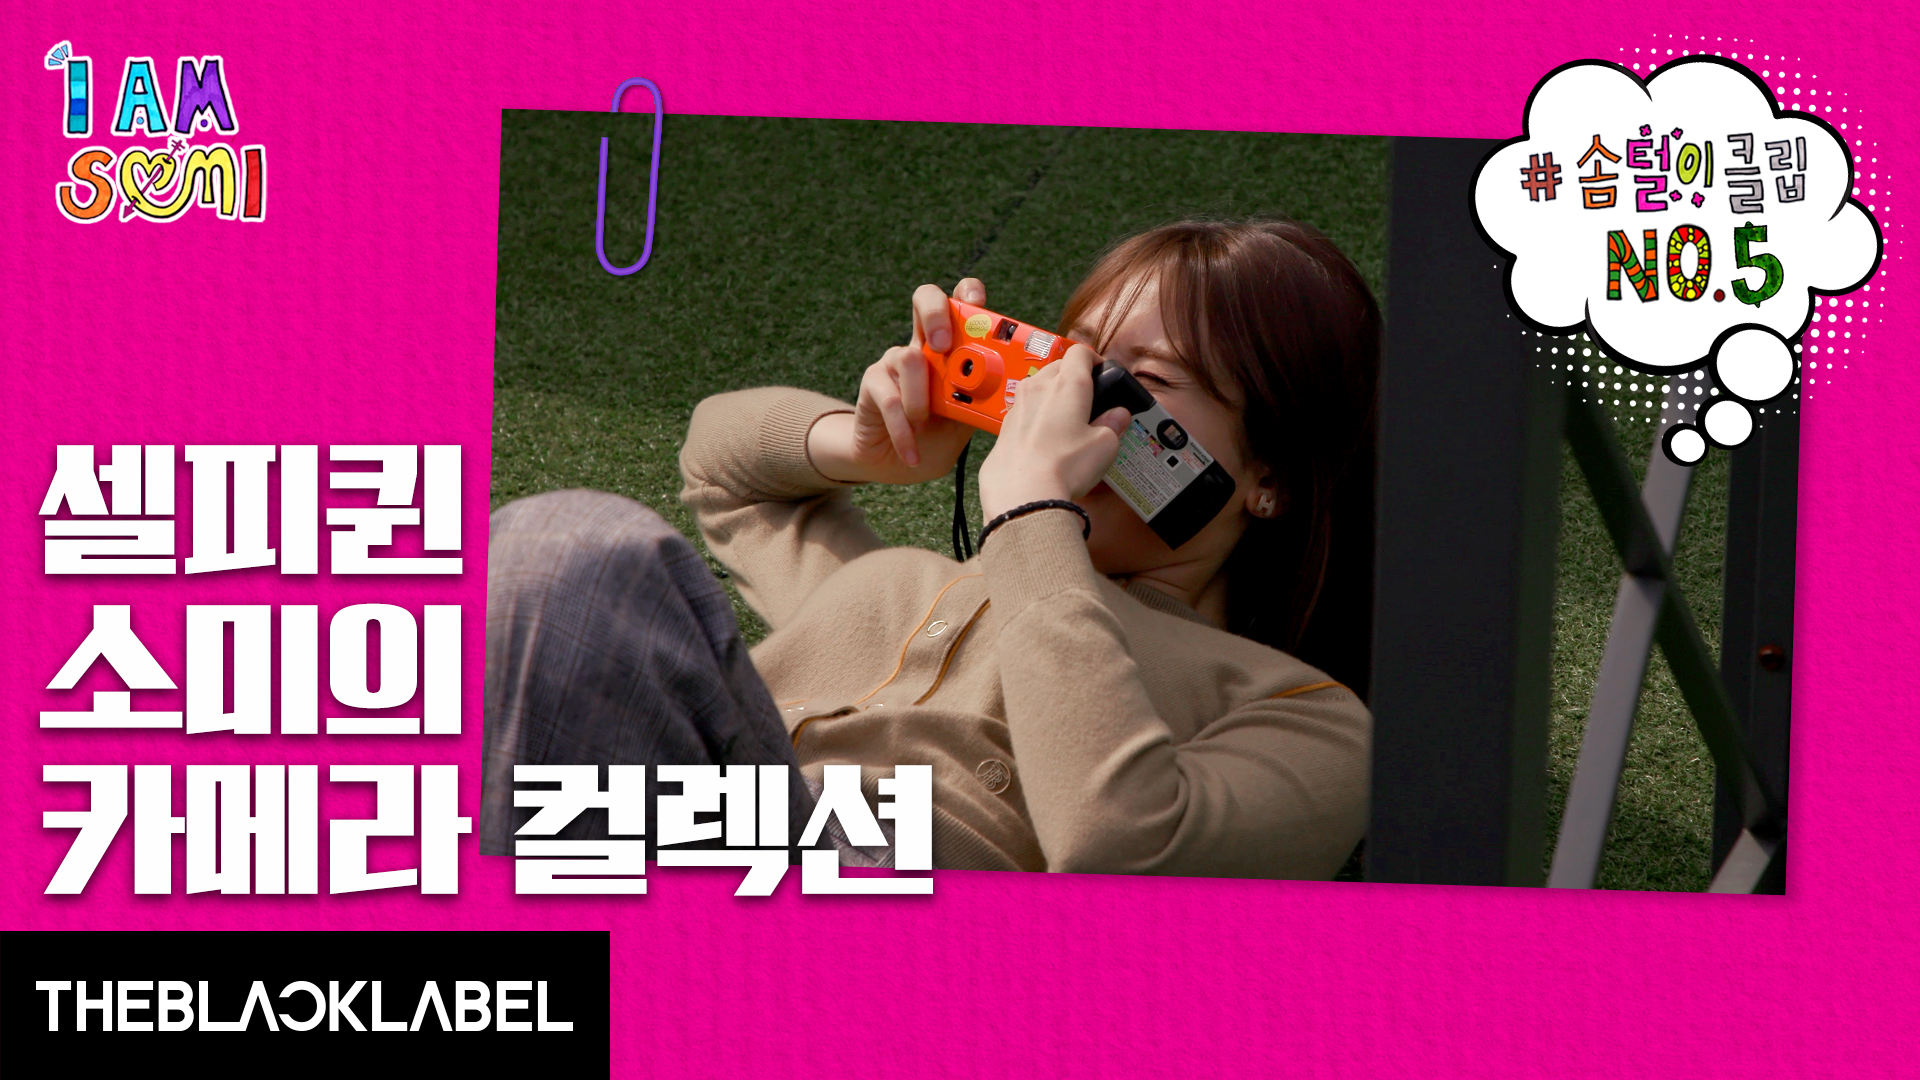 [SUB] SOMI THE SELFIE QUEEN'S CAMERA COLLECTION⎮ 셀피퀸 소미의 카메라컬렉션 ⎮ 솜털이 Special Clip.05 'I AM SOMI'